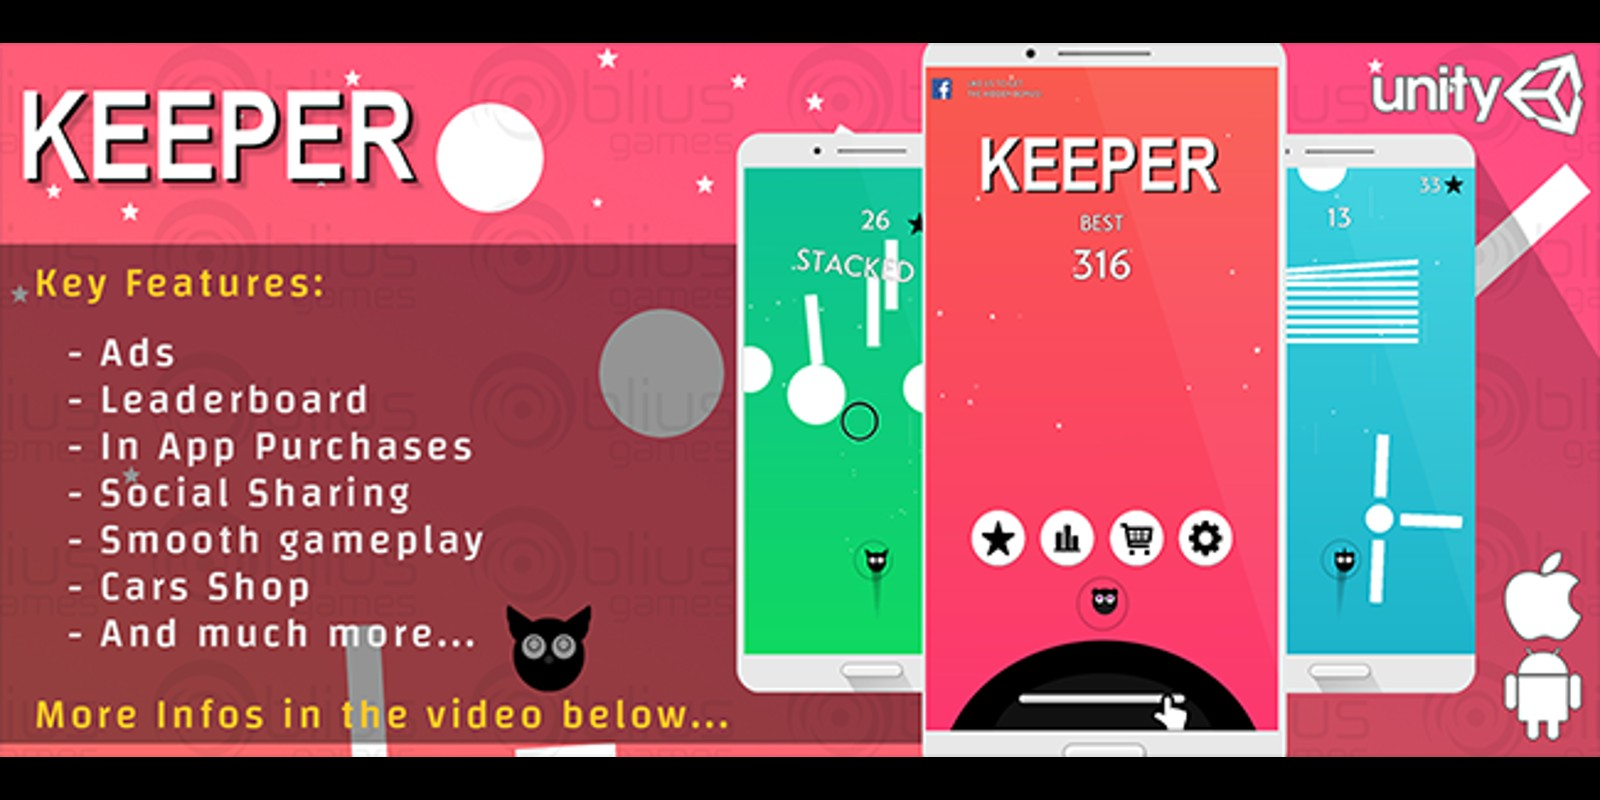 Keeper - Complete Unity Project